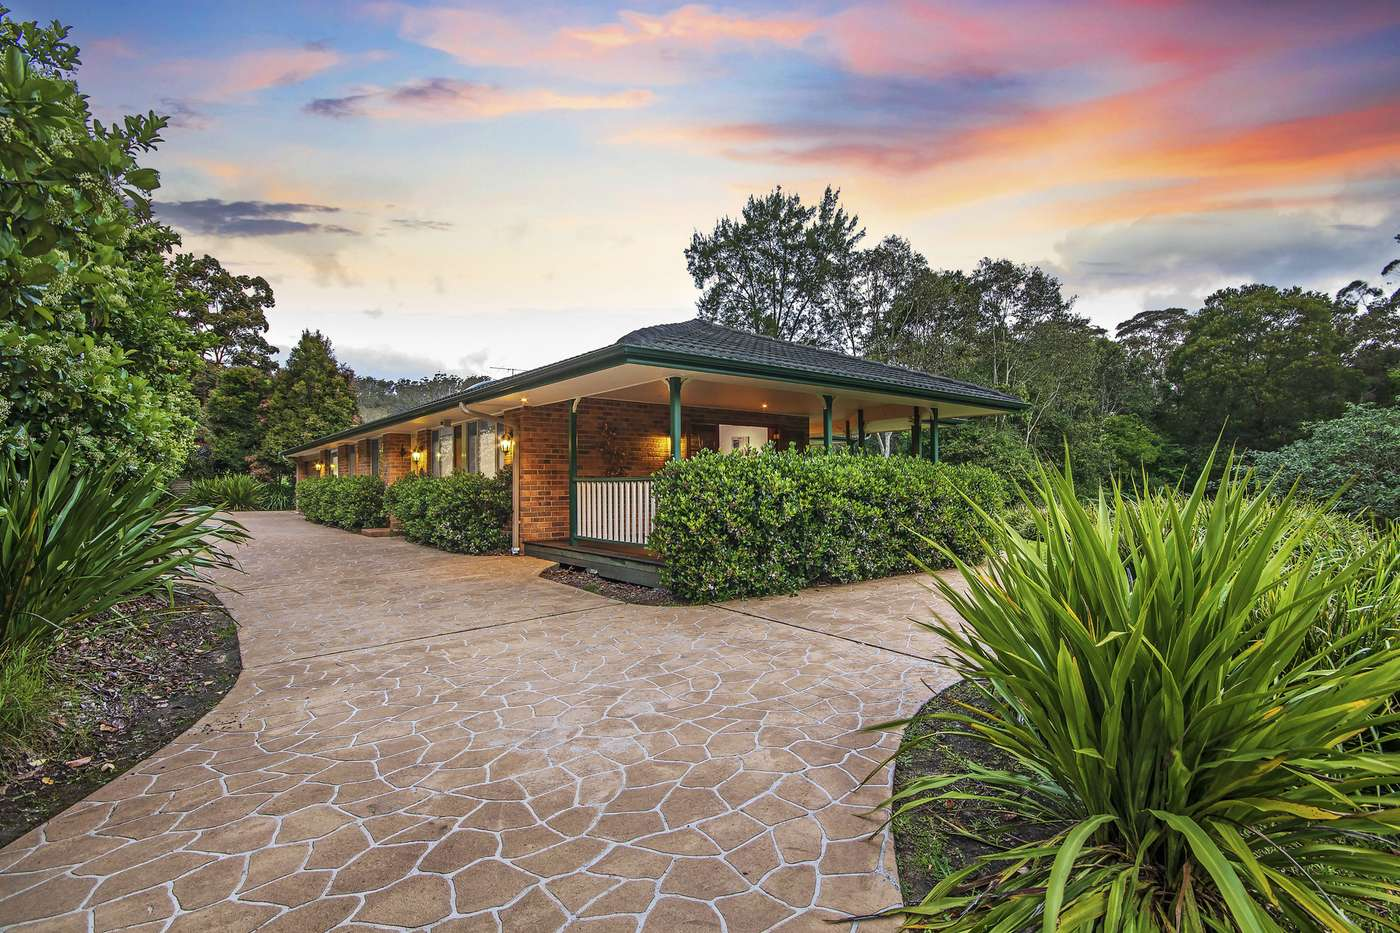 Main view of Homely house listing, 25 Shirley Street, Ourimbah, NSW 2258